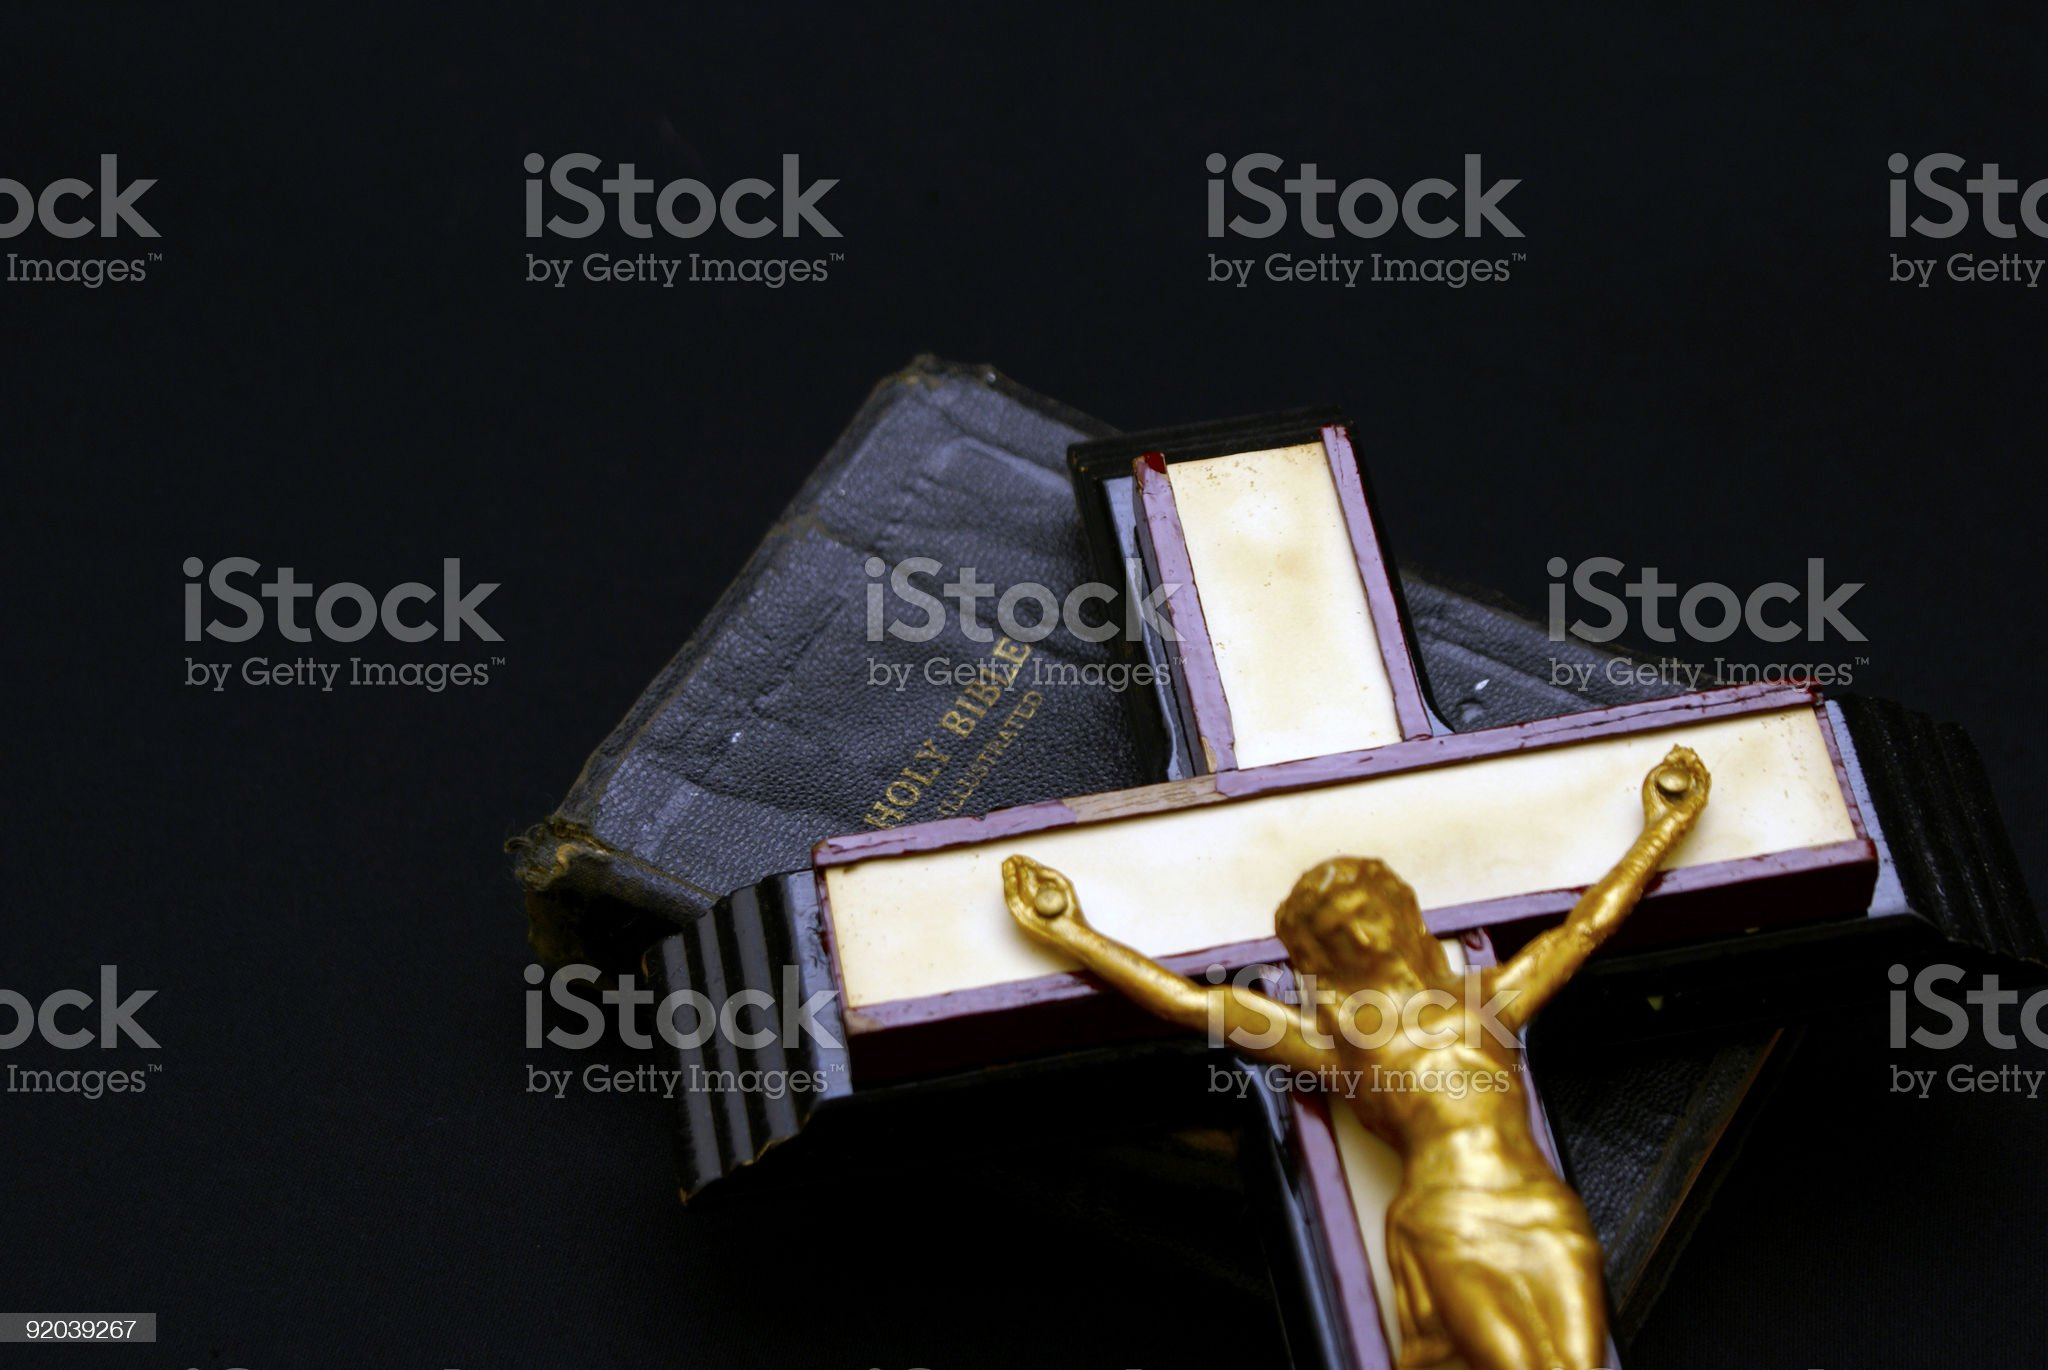 cross on bible royalty-free stock photo